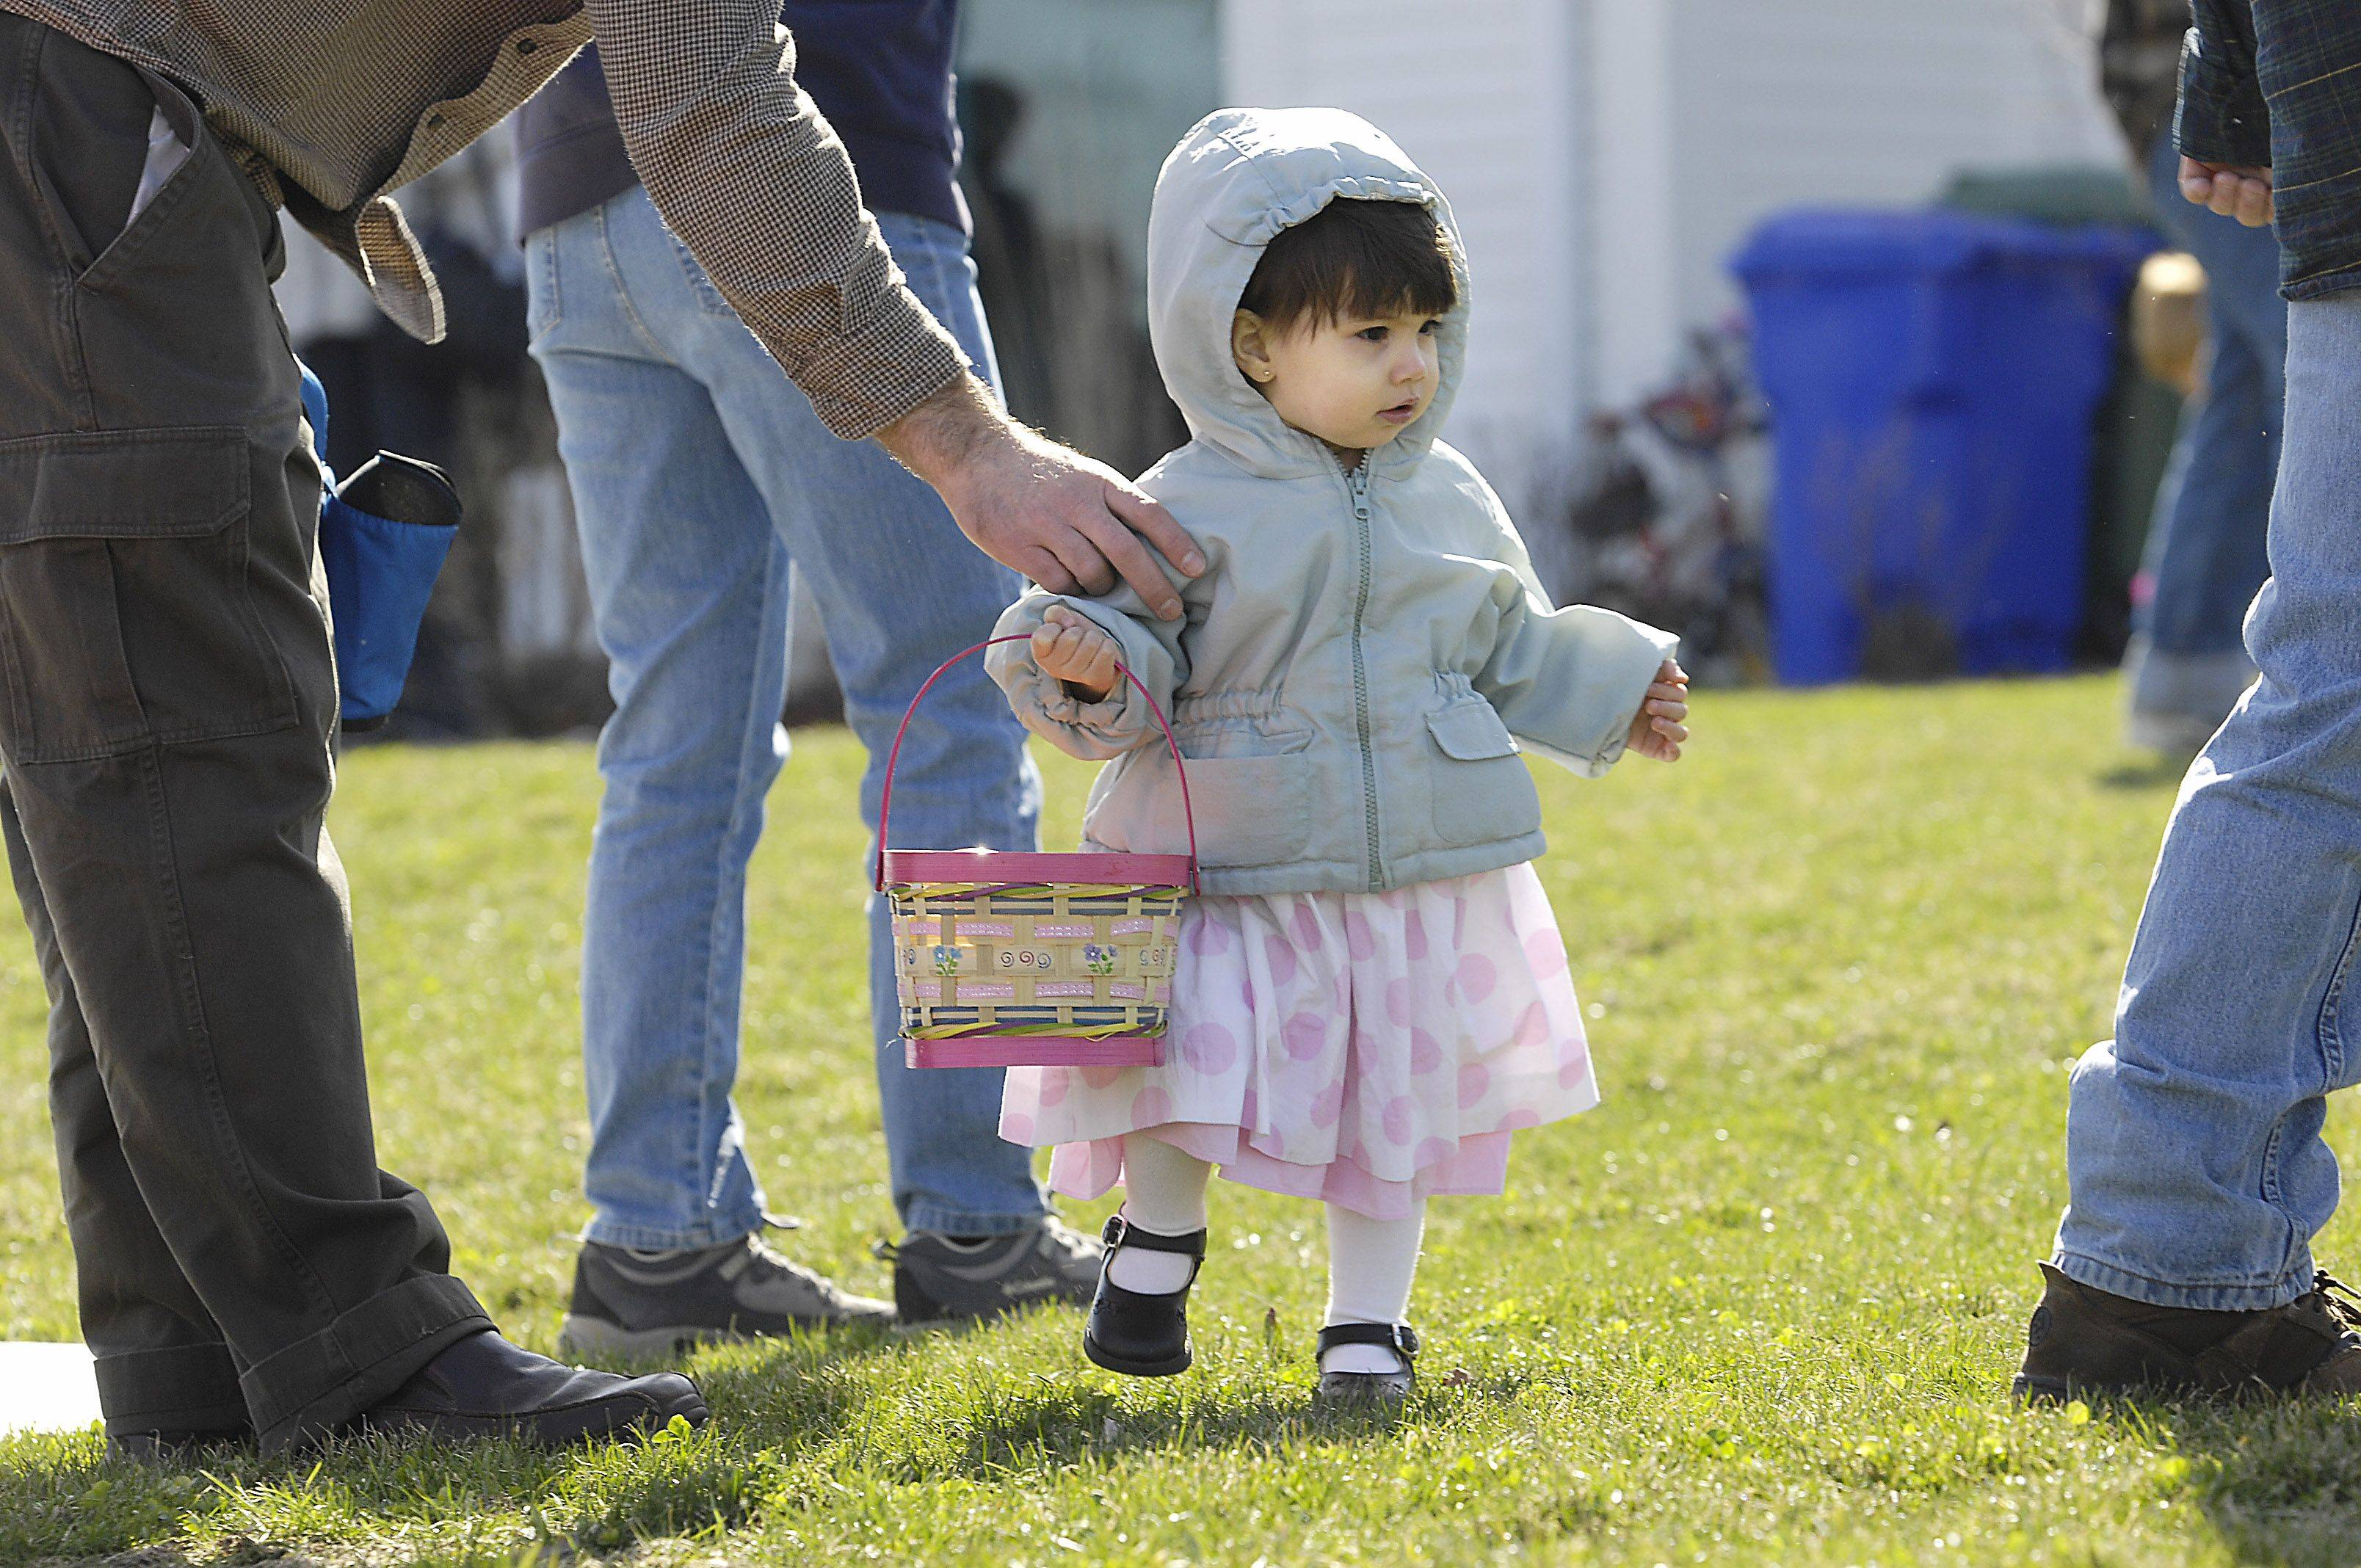 John Starks/jstarks@dailyherald.com � 18-month-old Samantha carries a basket as big as she can handle during an egg hunt Sunday at Faith Baptist Church at Mill Creek in Geneva. She was with her dad Tom Sipes of Geneva.